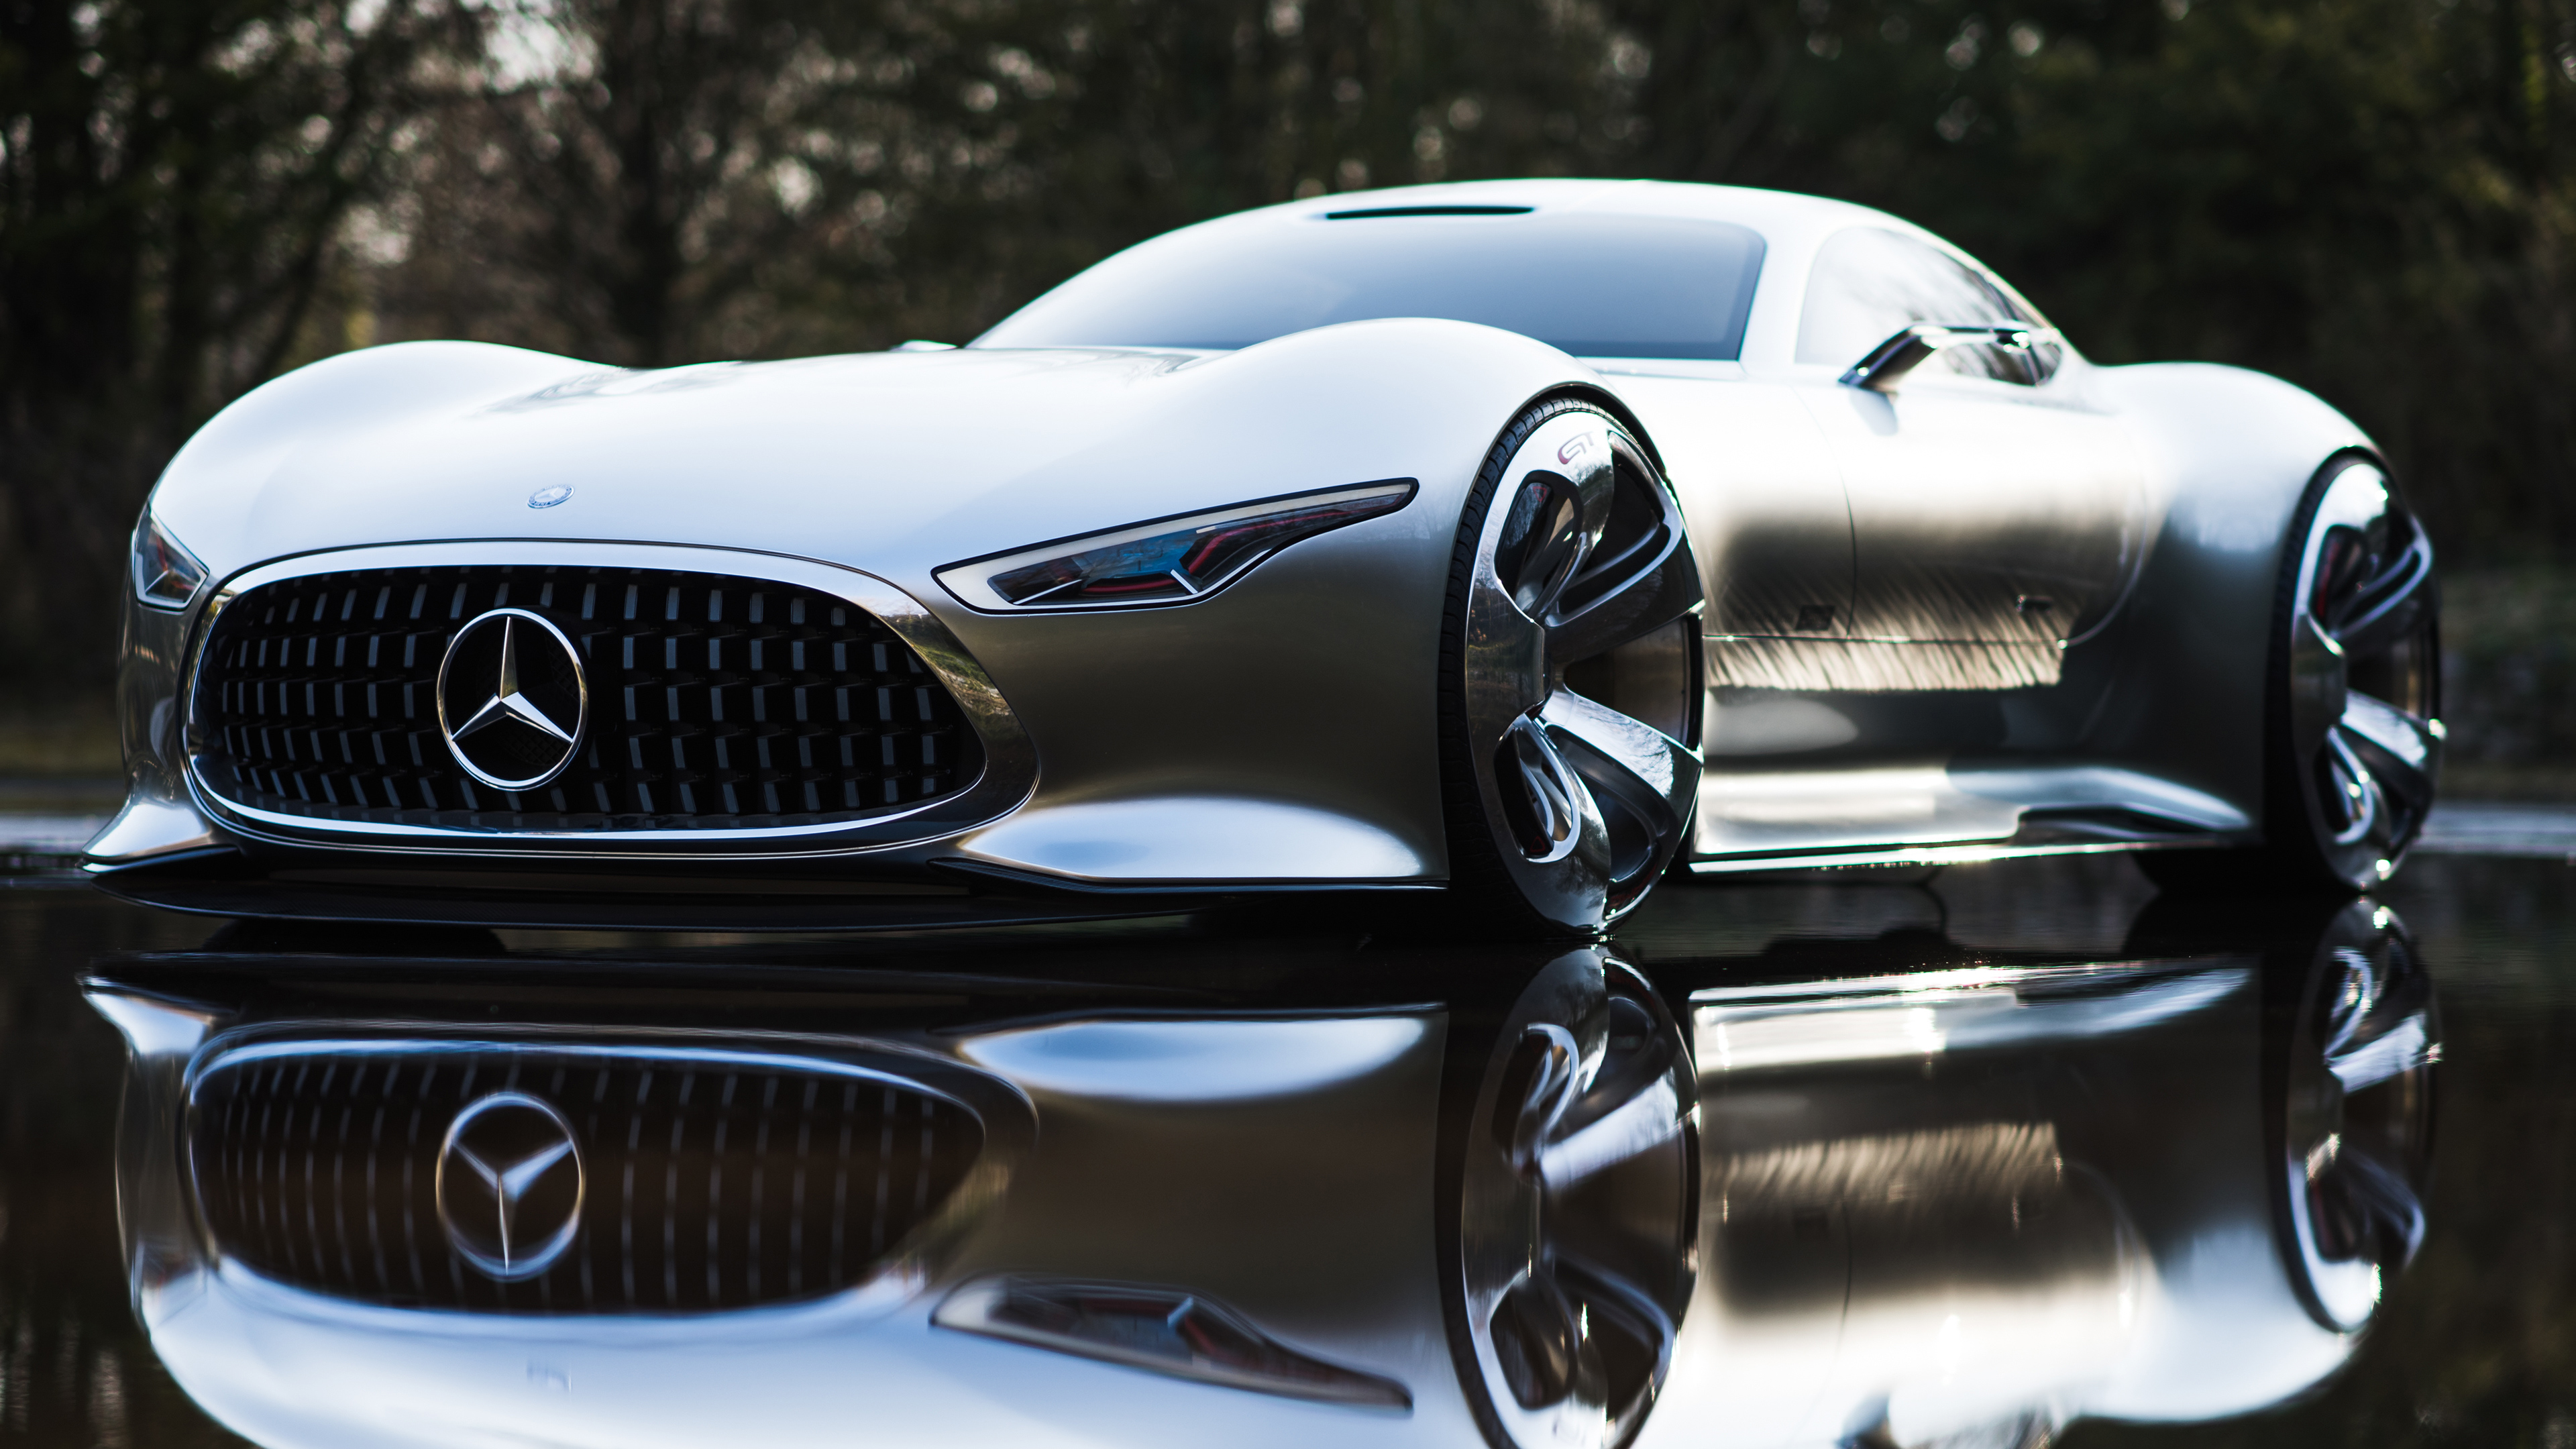 mercedes benz amg vision gran turismo 4k 1546361552 - Mercedes Benz AMG Vision Gran Turismo 4k - mercedes benz wallpapers, hd-wallpapers, cars wallpapers, behance wallpapers, 4k-wallpapers